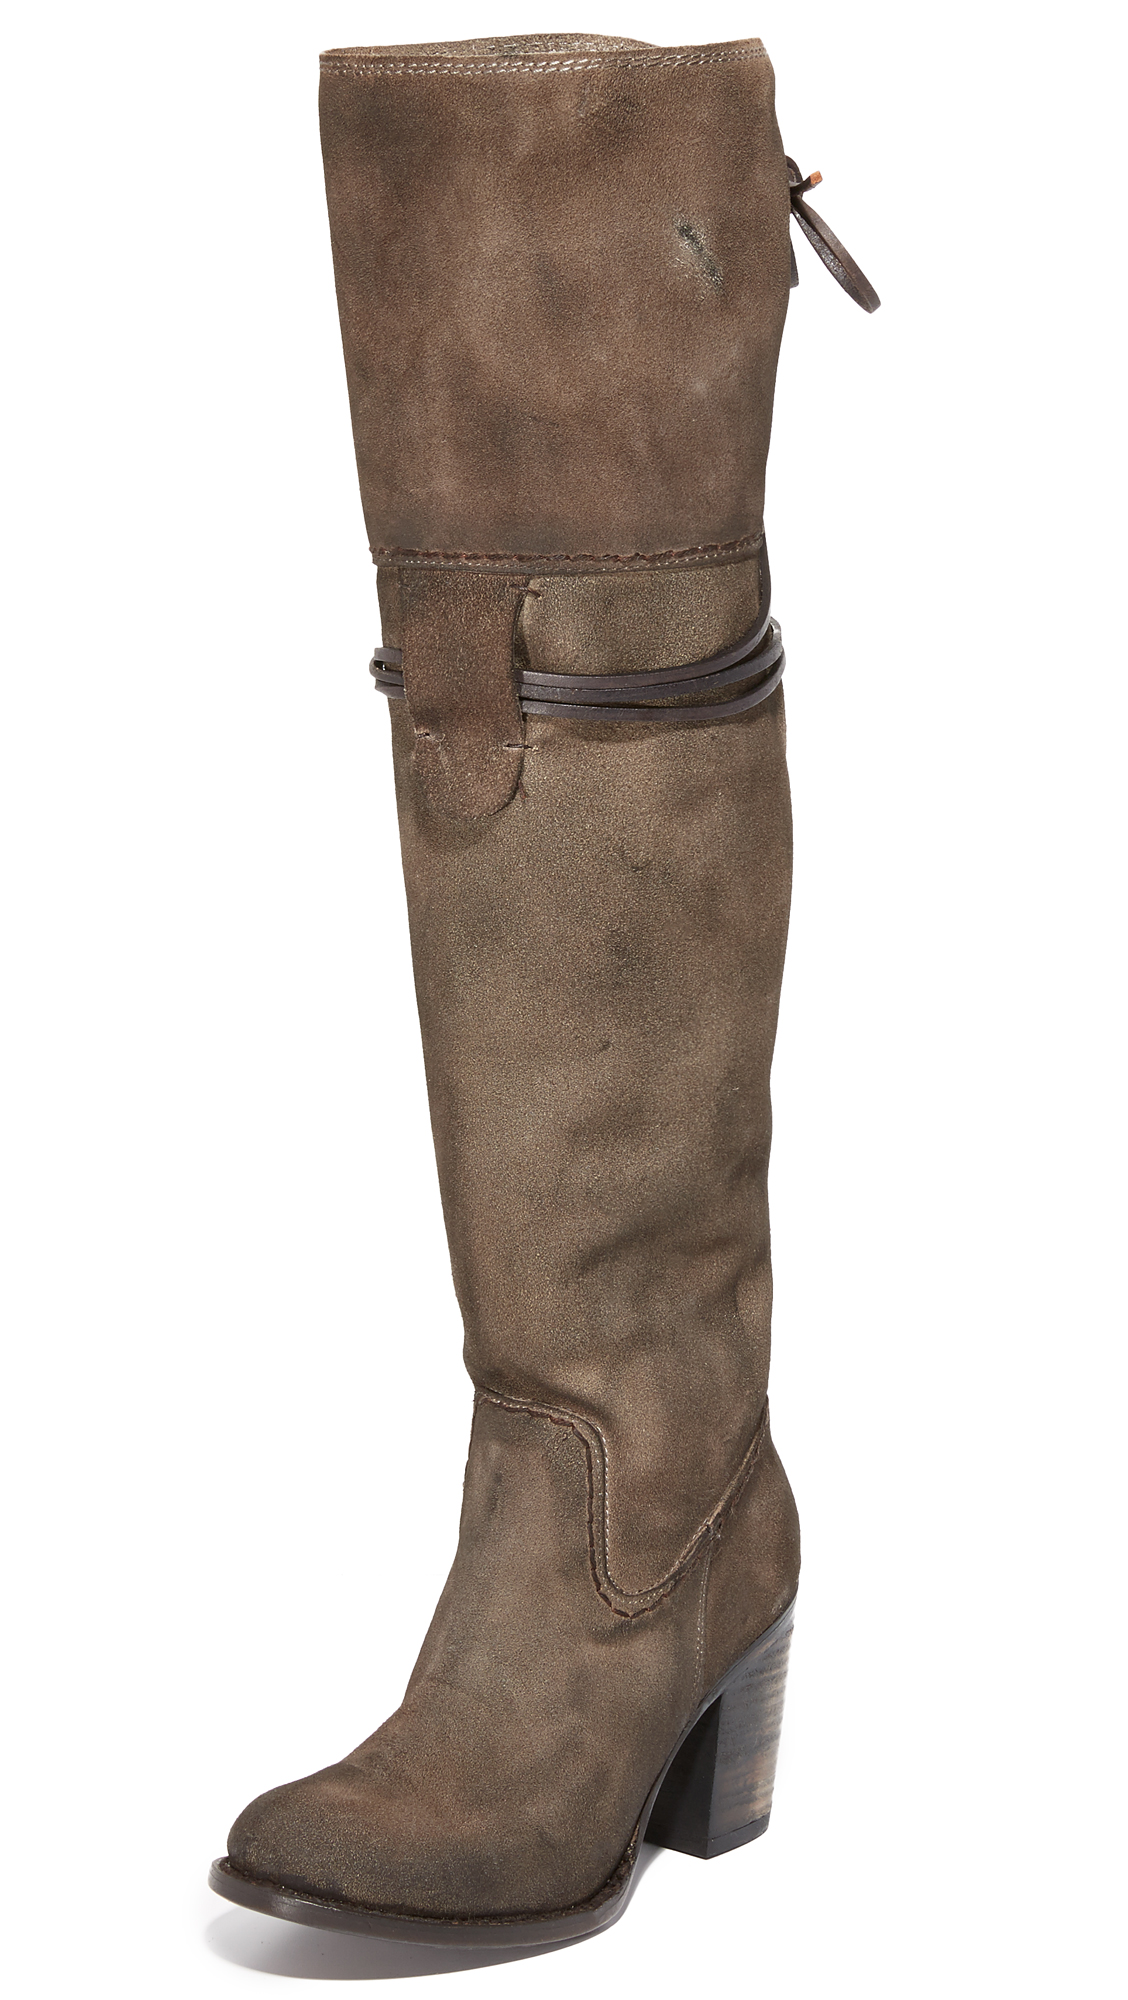 Freebird By Steven Brock Over The Knee Boots - Grey